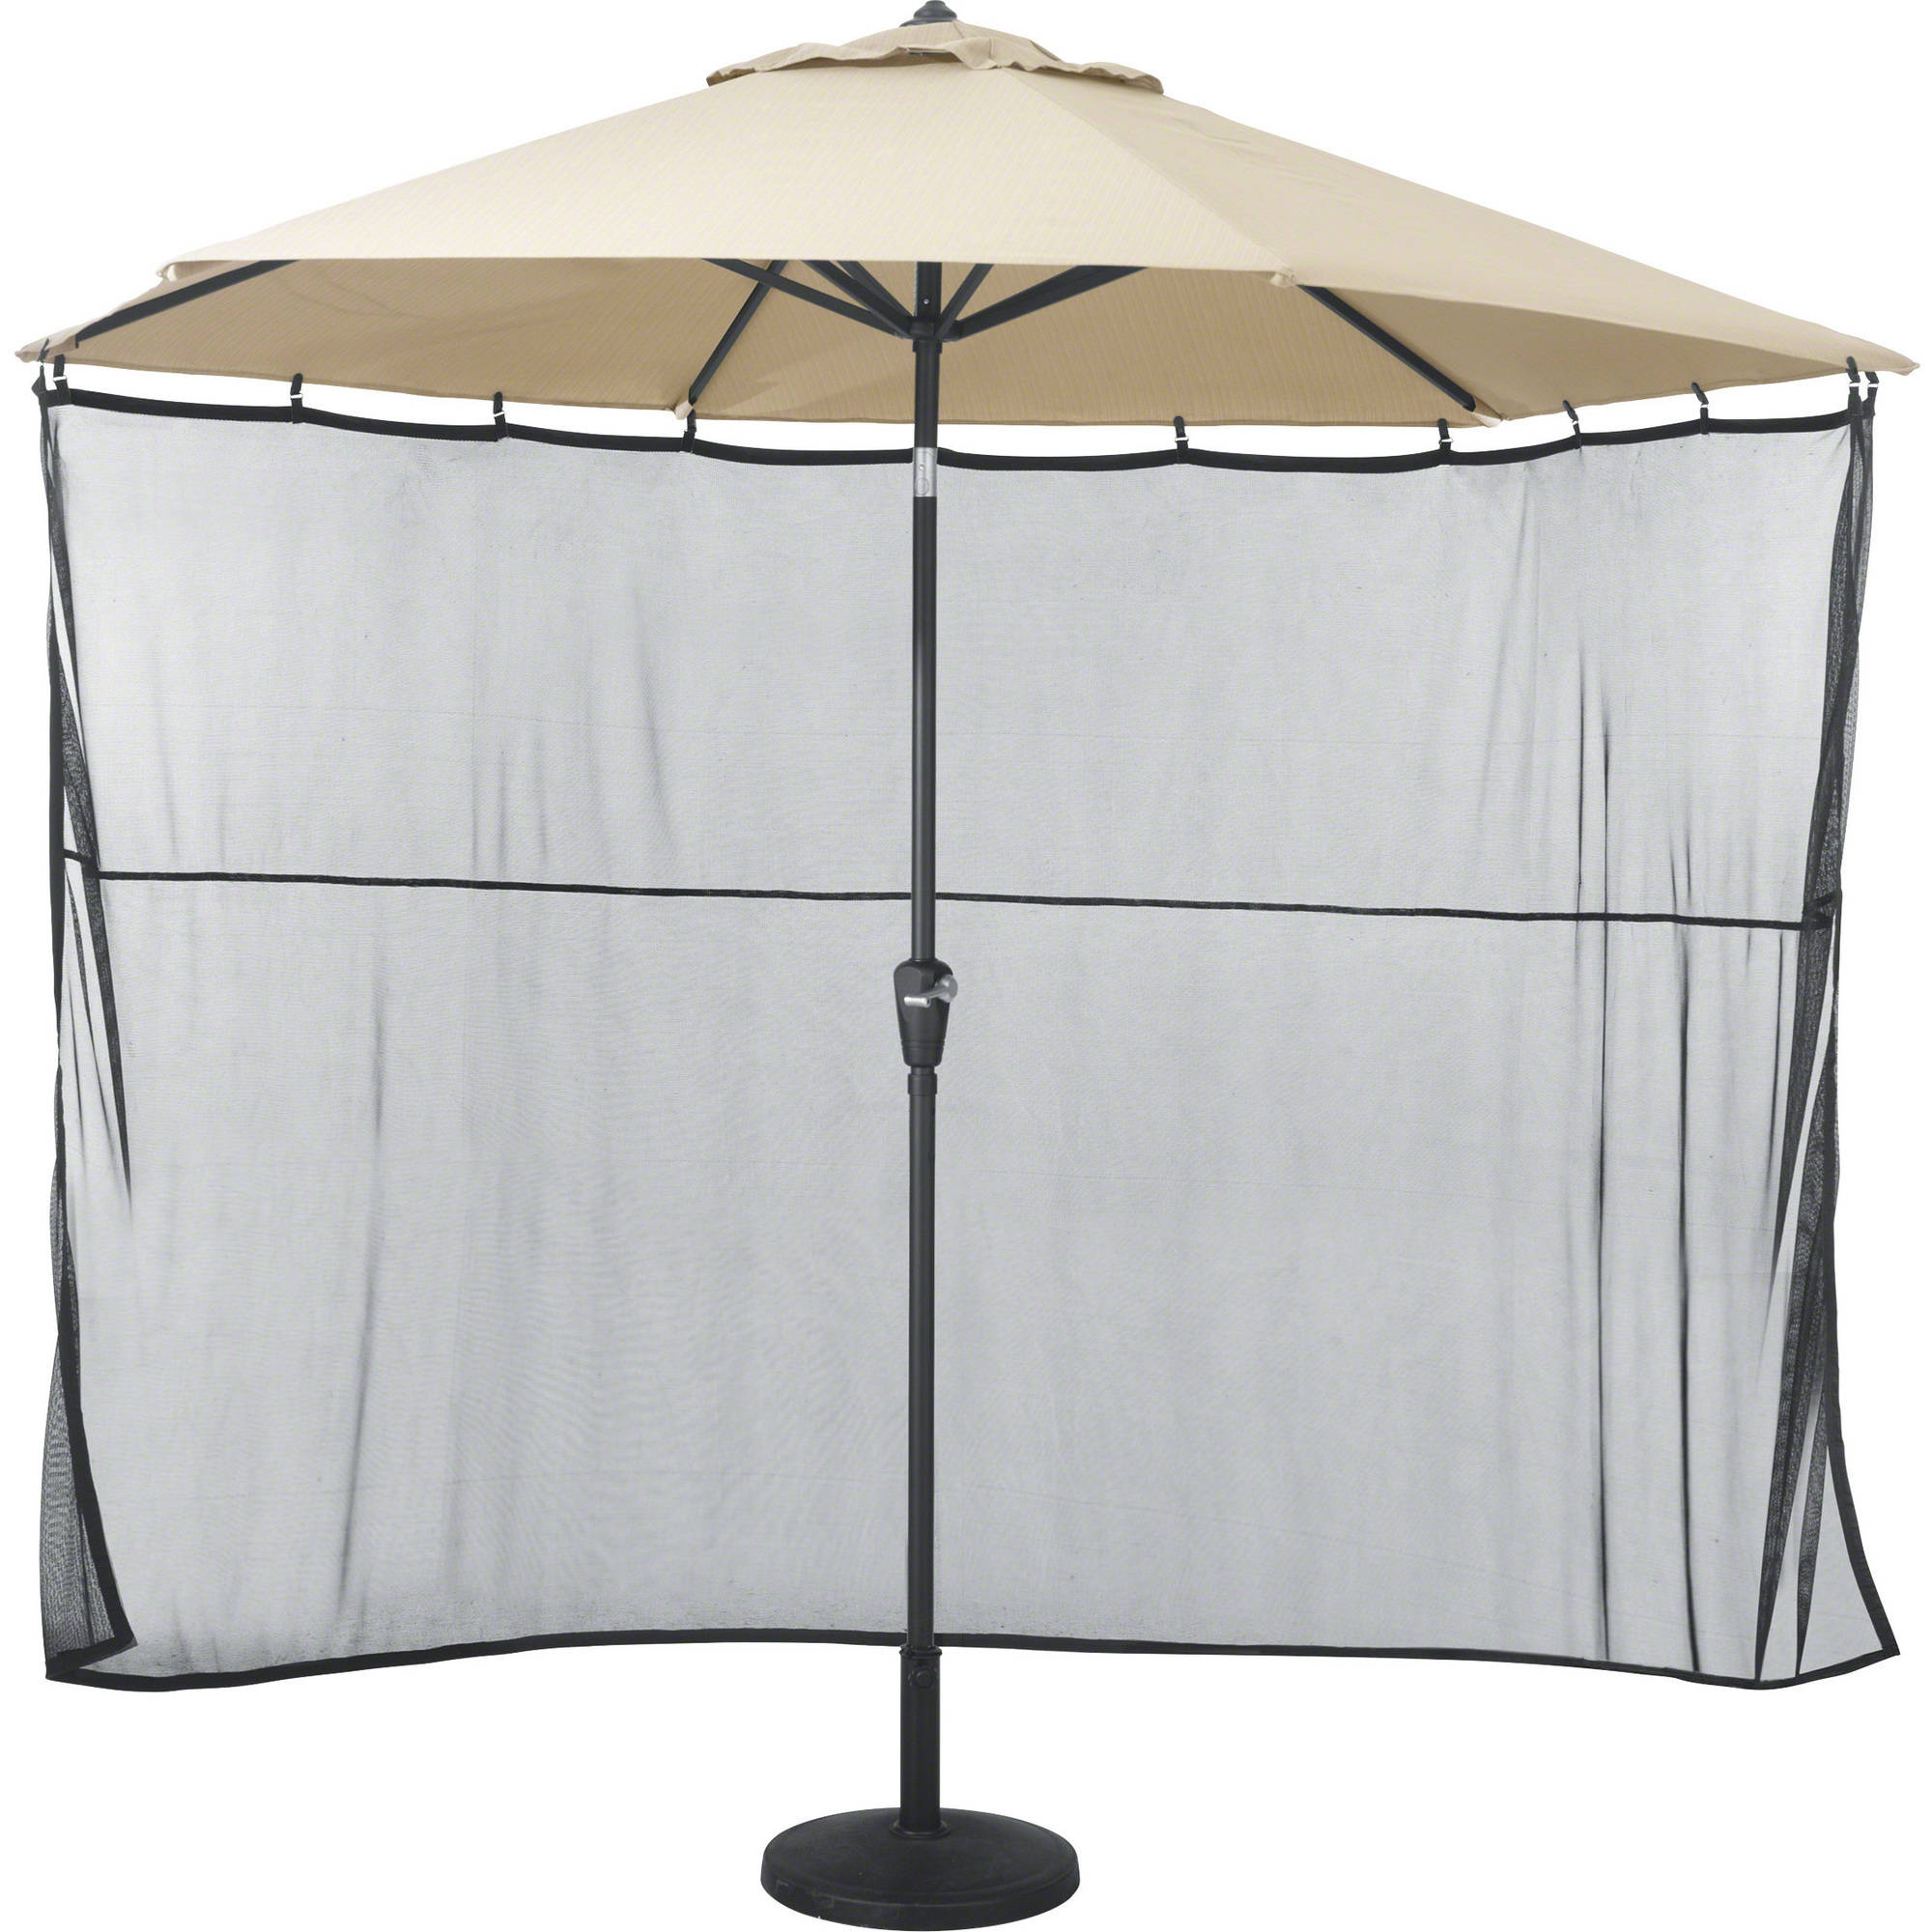 Classic Accessories Umbrella Sunshade Screen